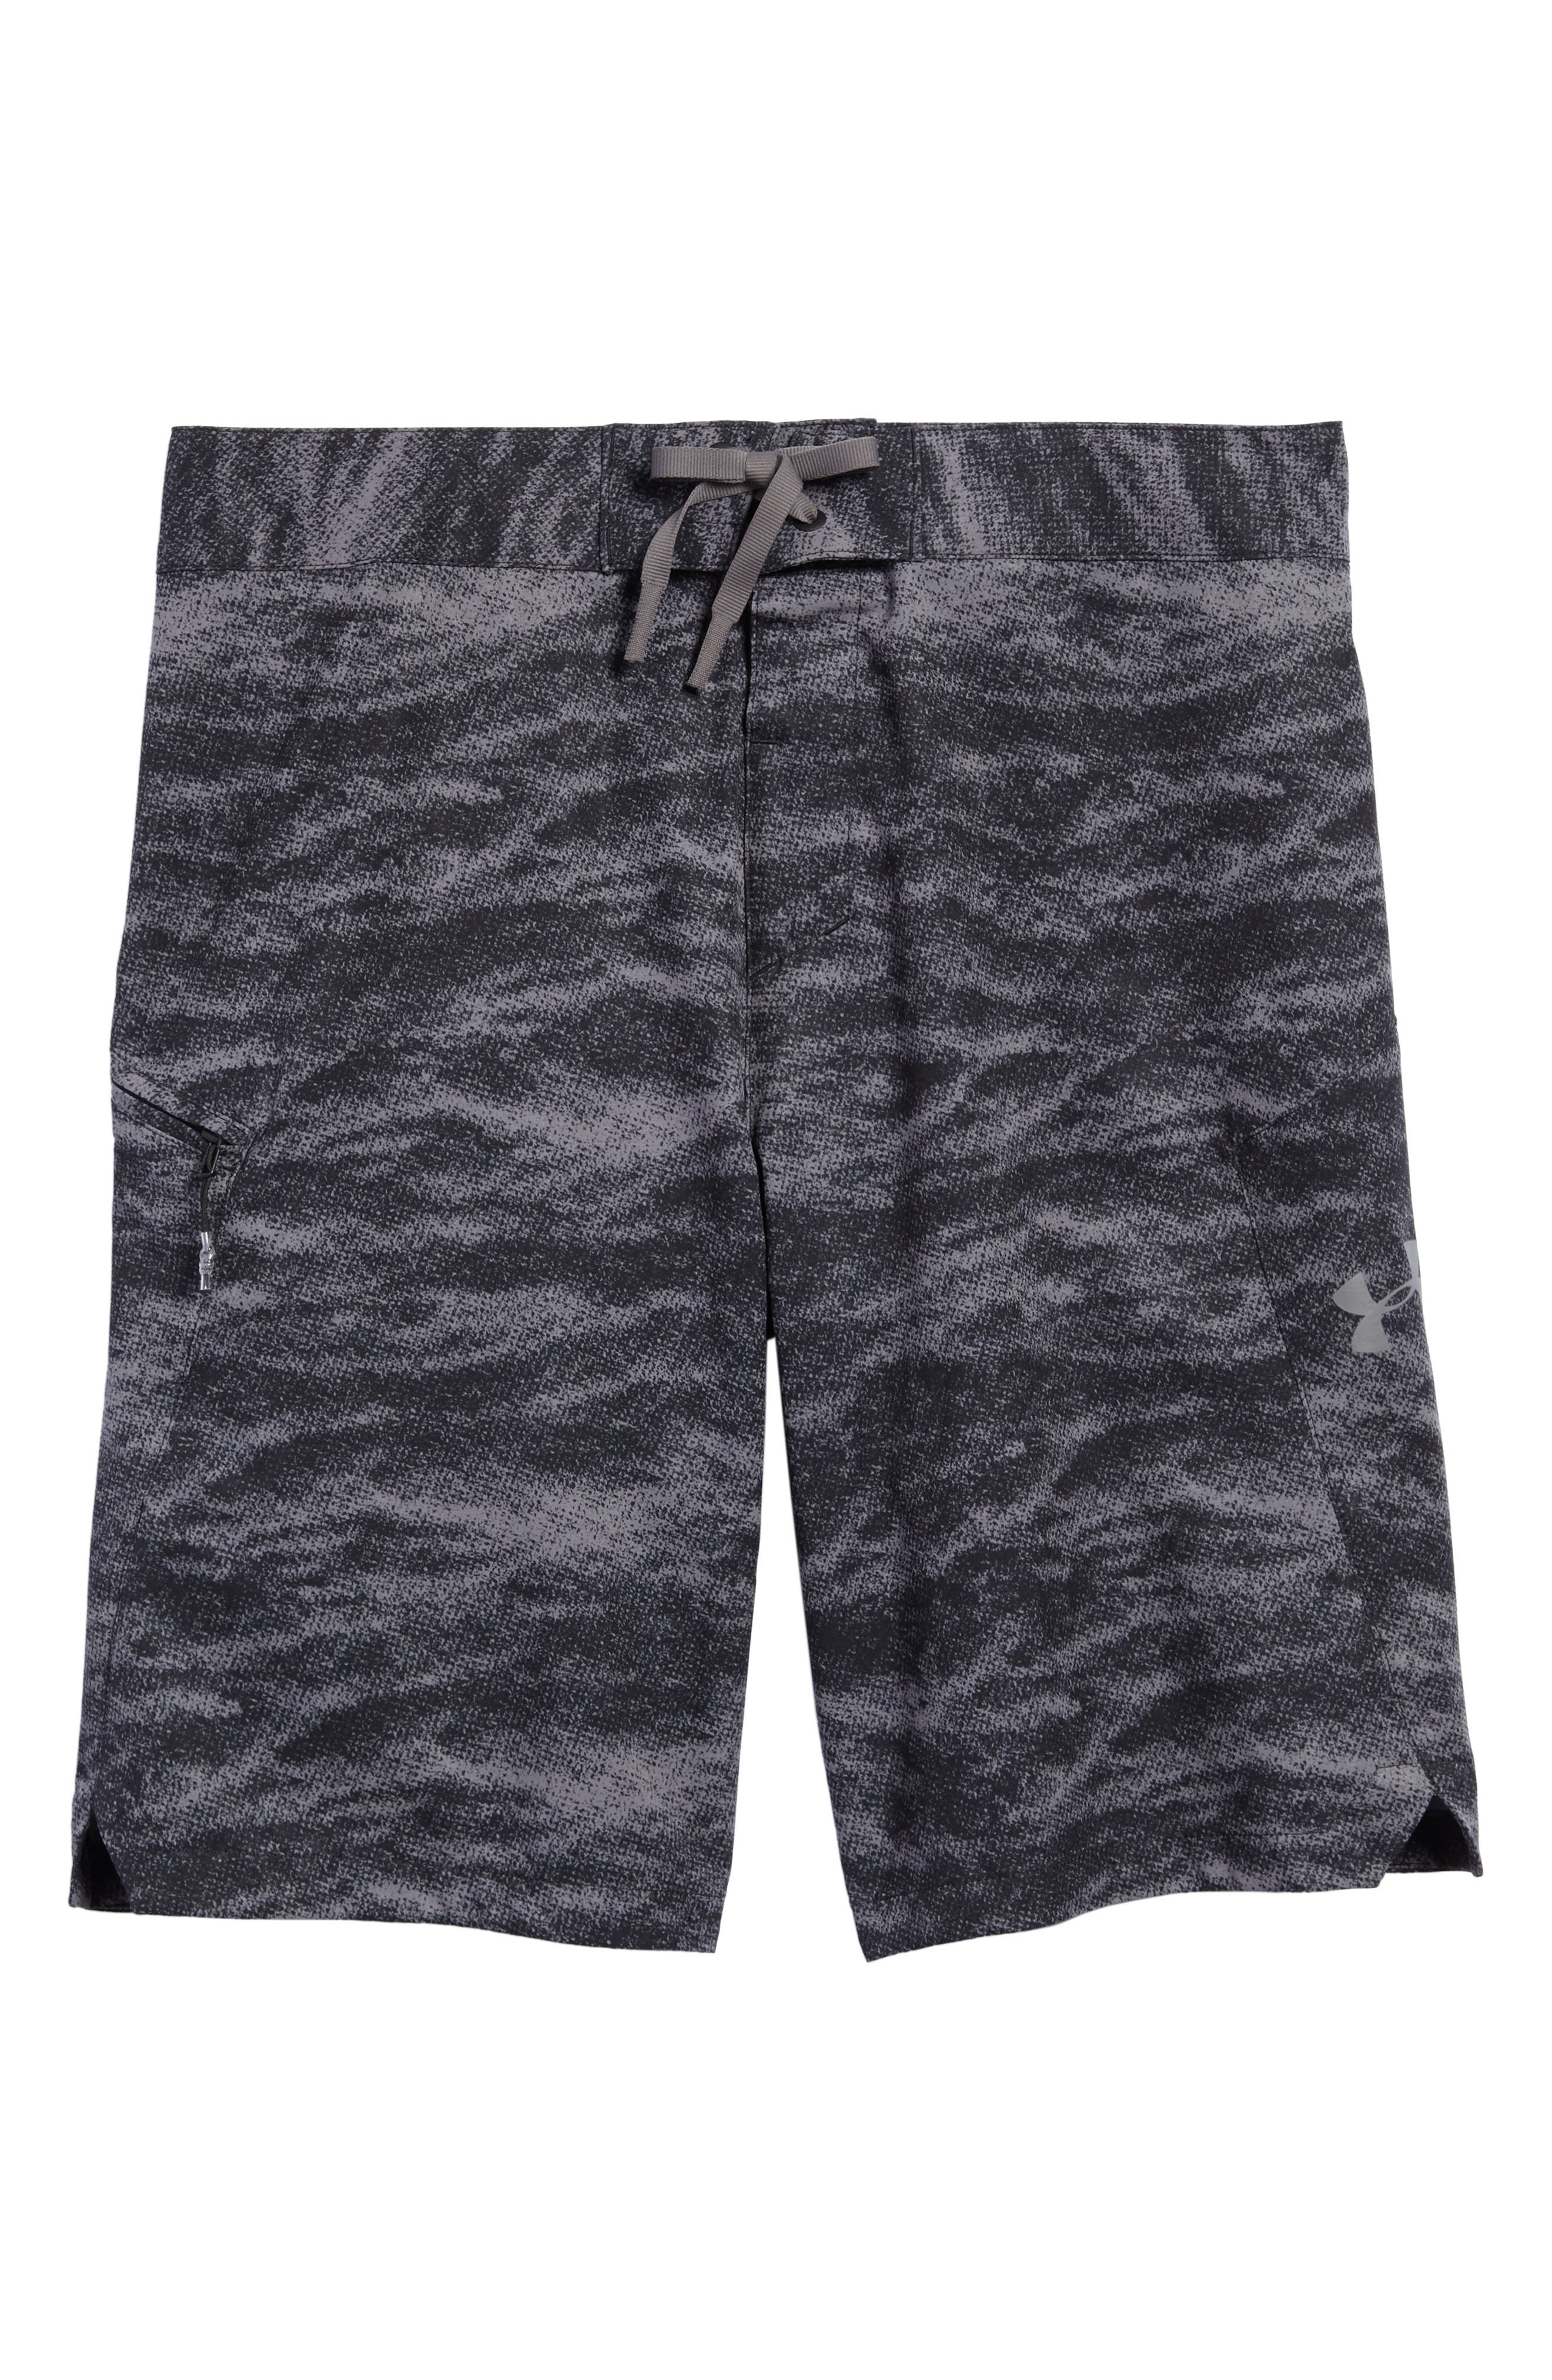 UNDER ARMOUR,                             Print Board Shorts,                             Alternate thumbnail 6, color,                             004